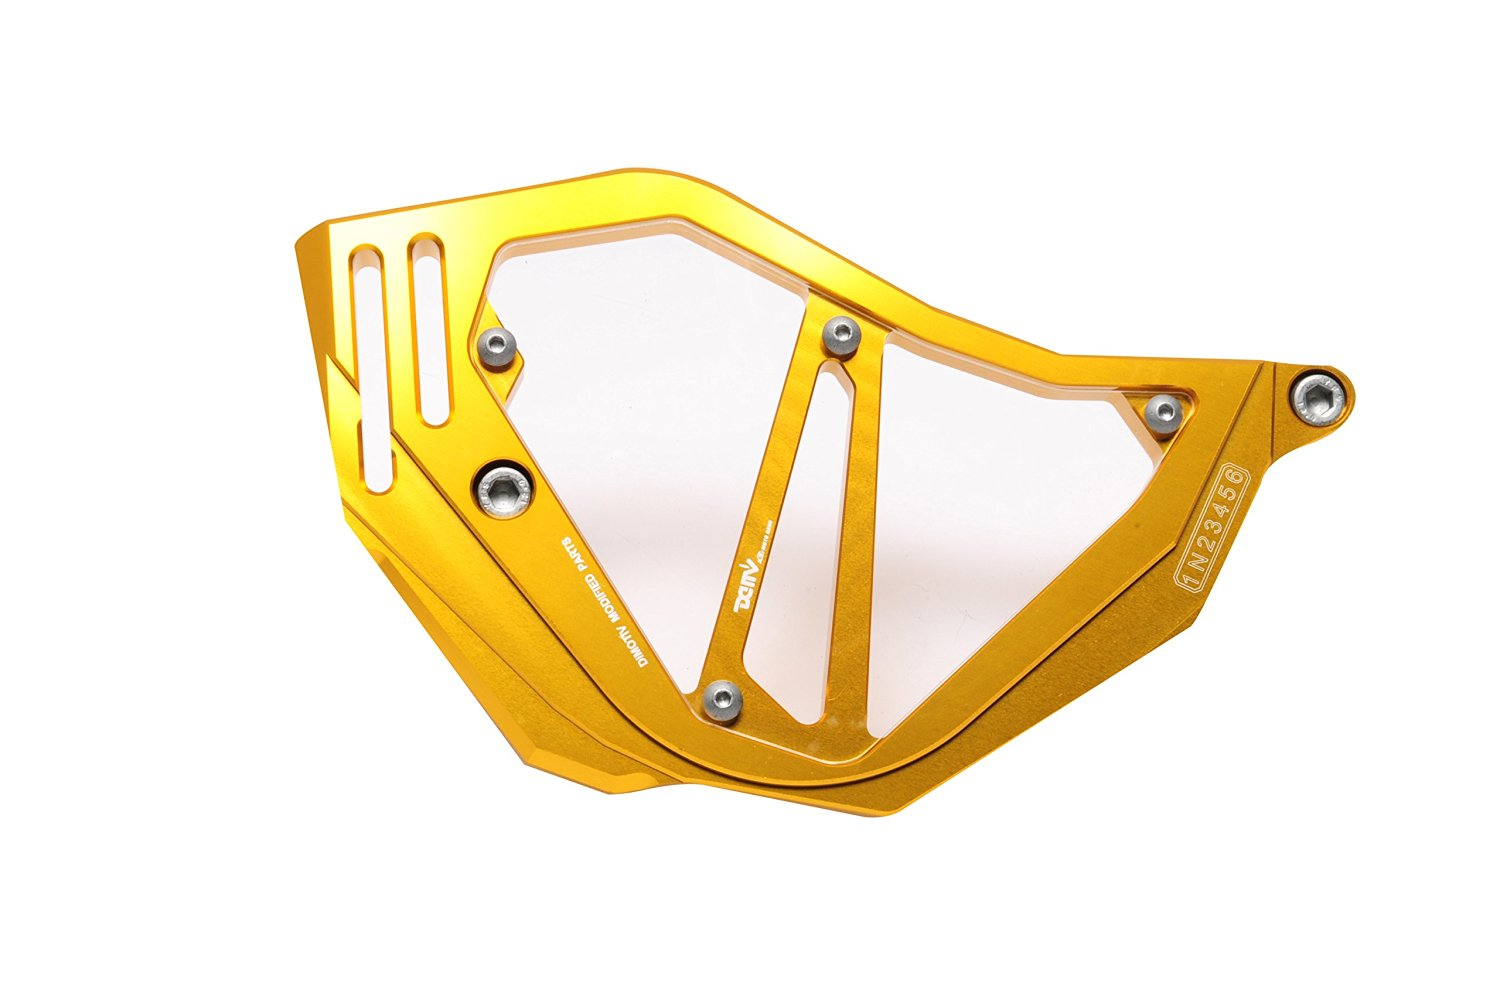 Dimotiv DMV Front Sprocket Cover for Honda NC700S/X 12-14, NC750S/X 13-14 (Gold)